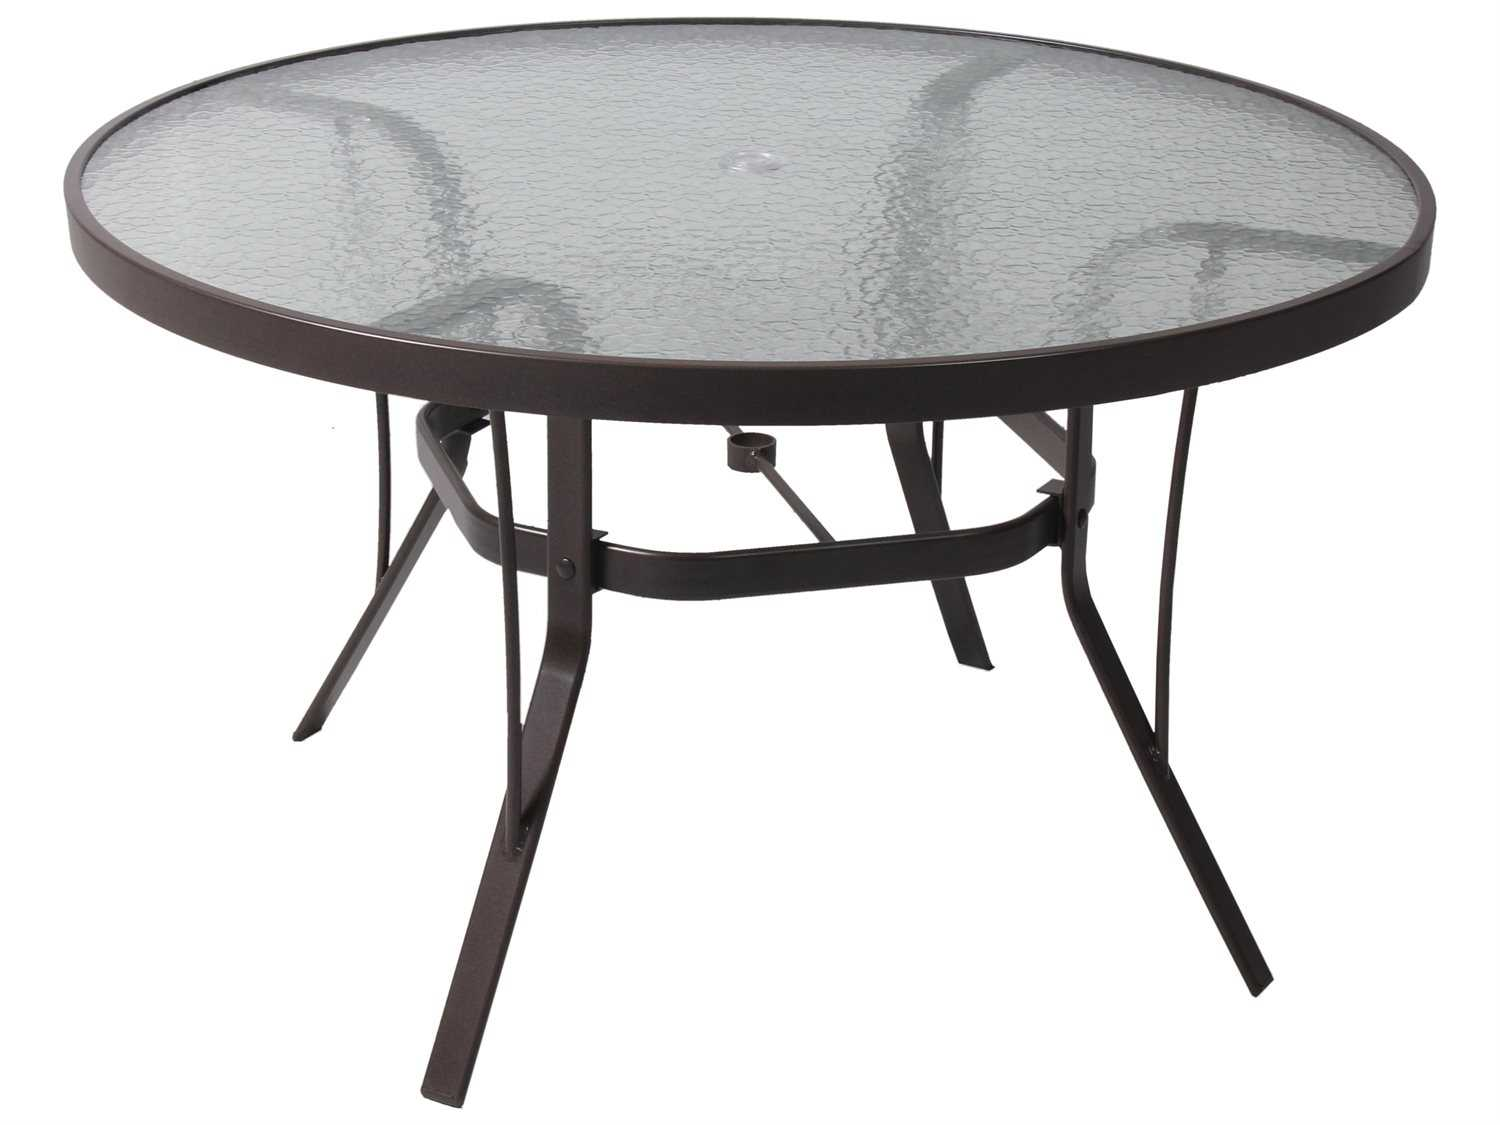 Suncoast cast aluminum 36 39 39 round glass top dining table for Glass top outdoor dining table